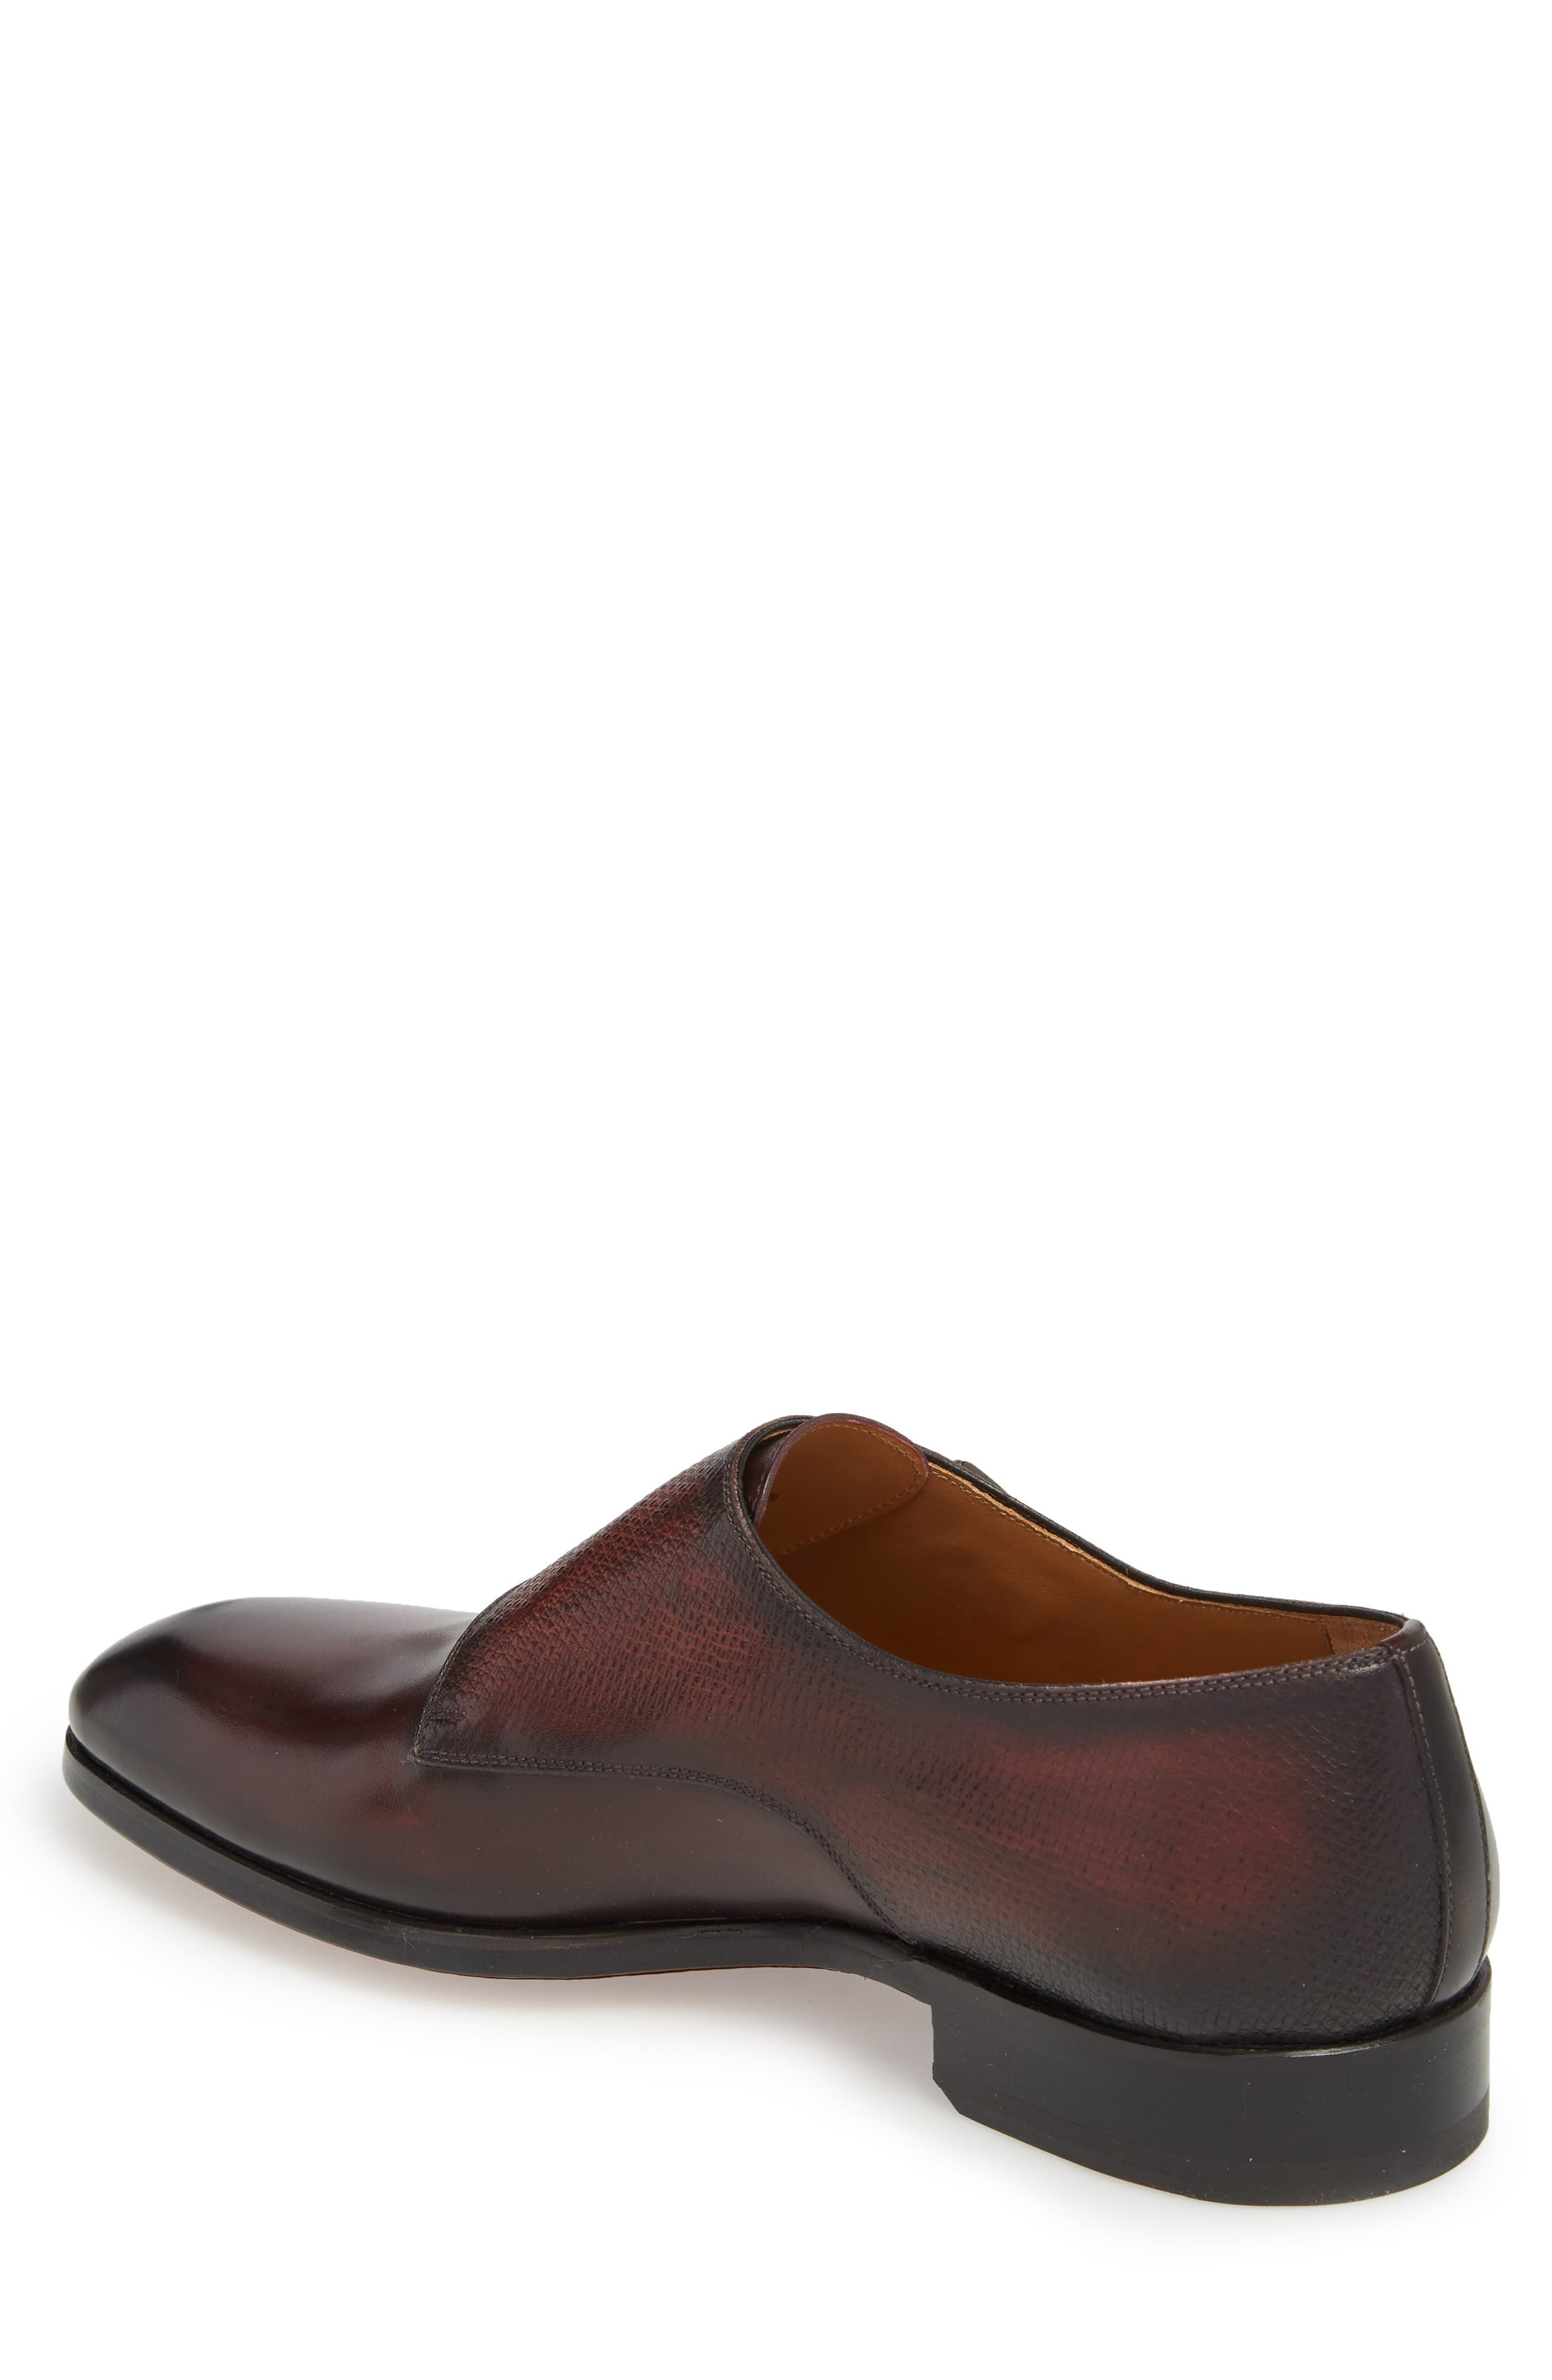 Arlo Pebbled Monk Shoe,                             Alternate thumbnail 2, color,                             BURGUNDY LEATHER